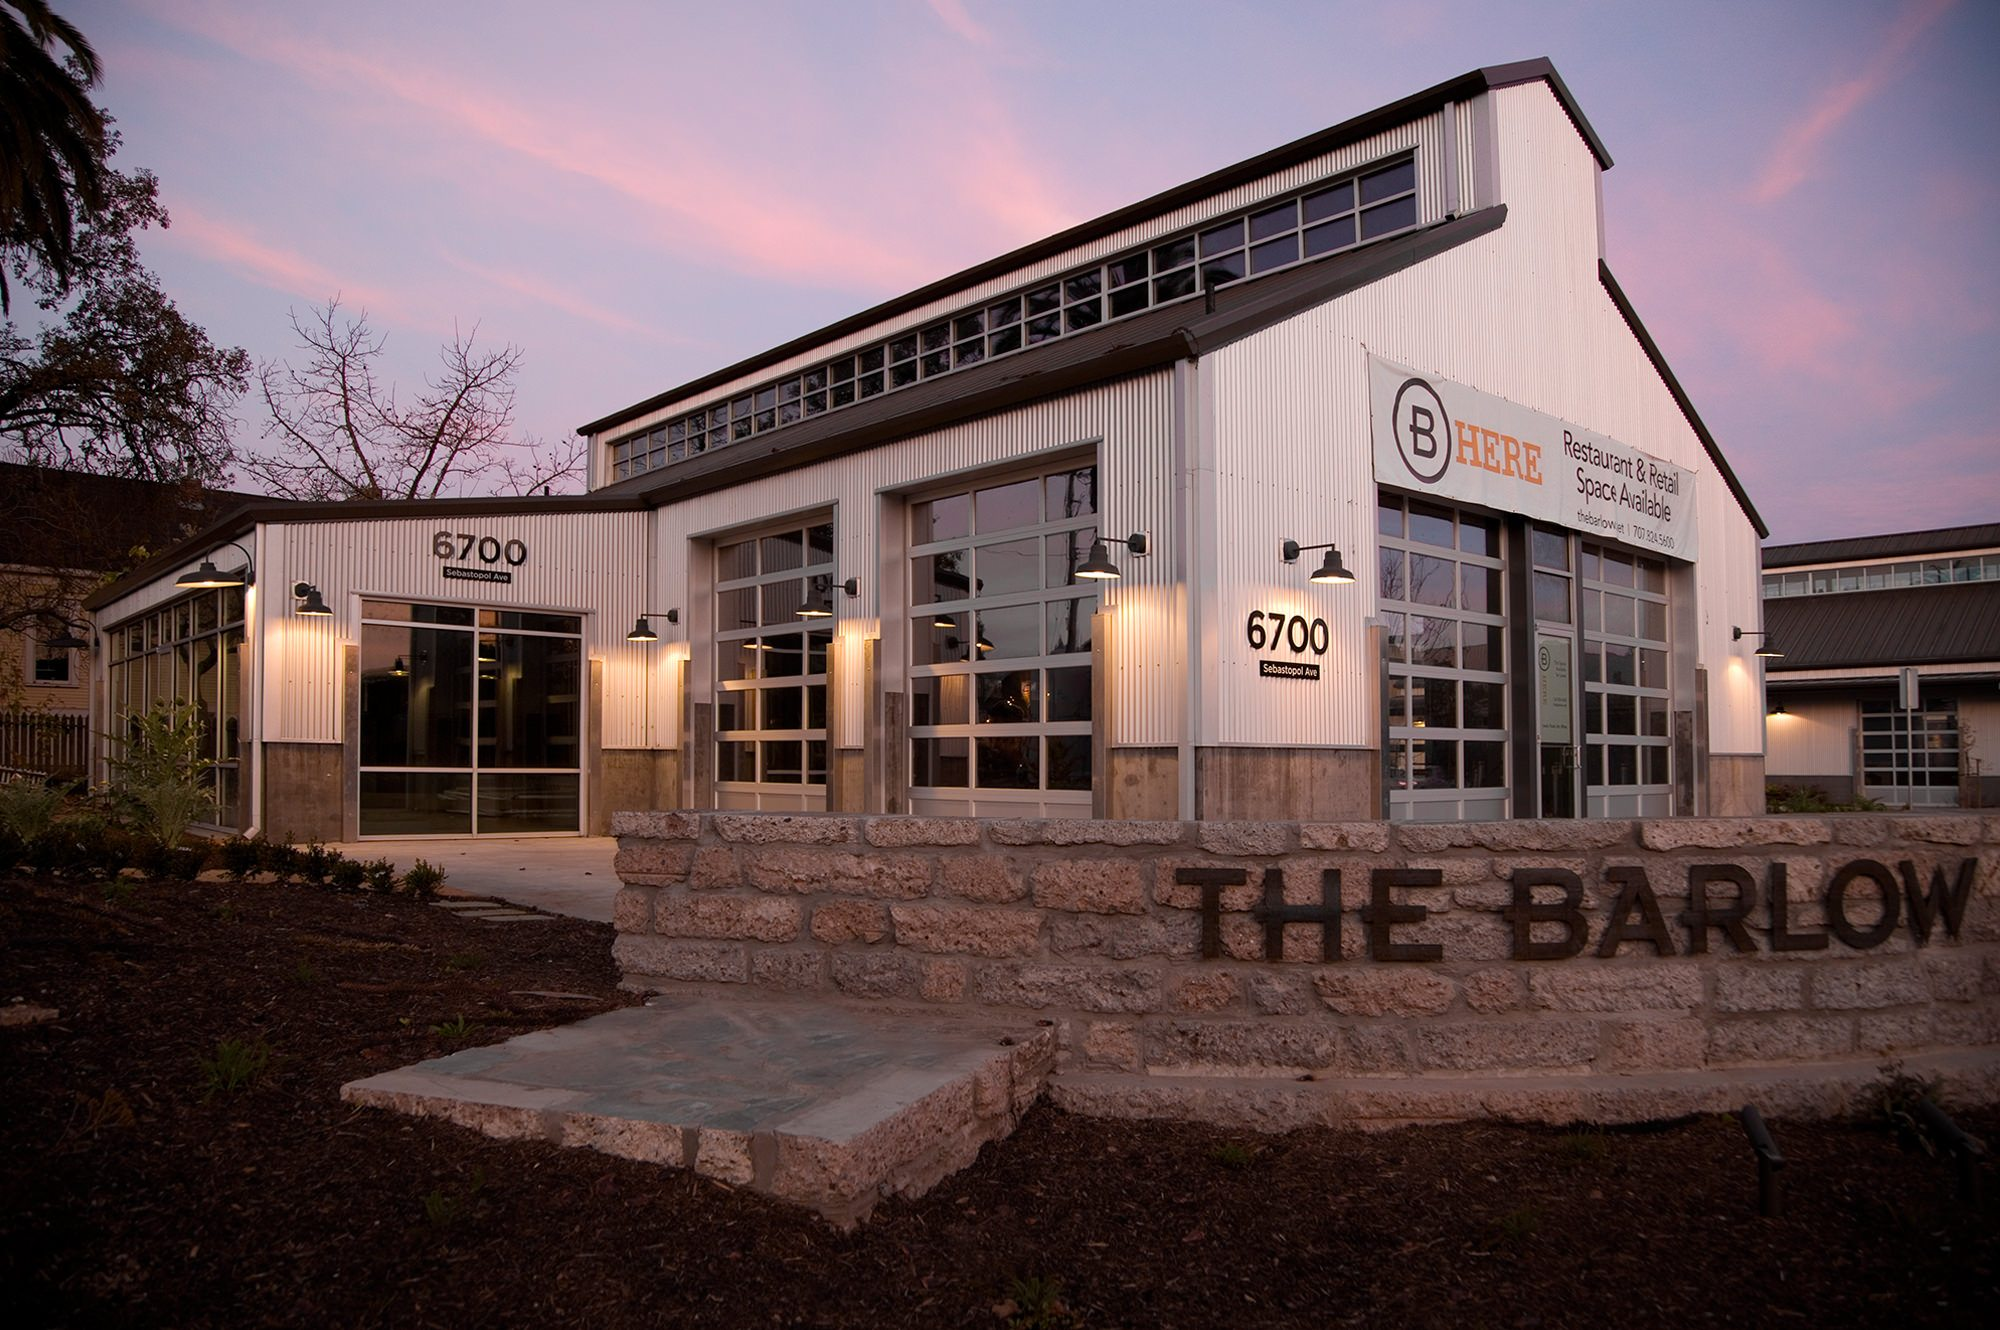 The Barlow - a General Contractor Project In Sebastopol